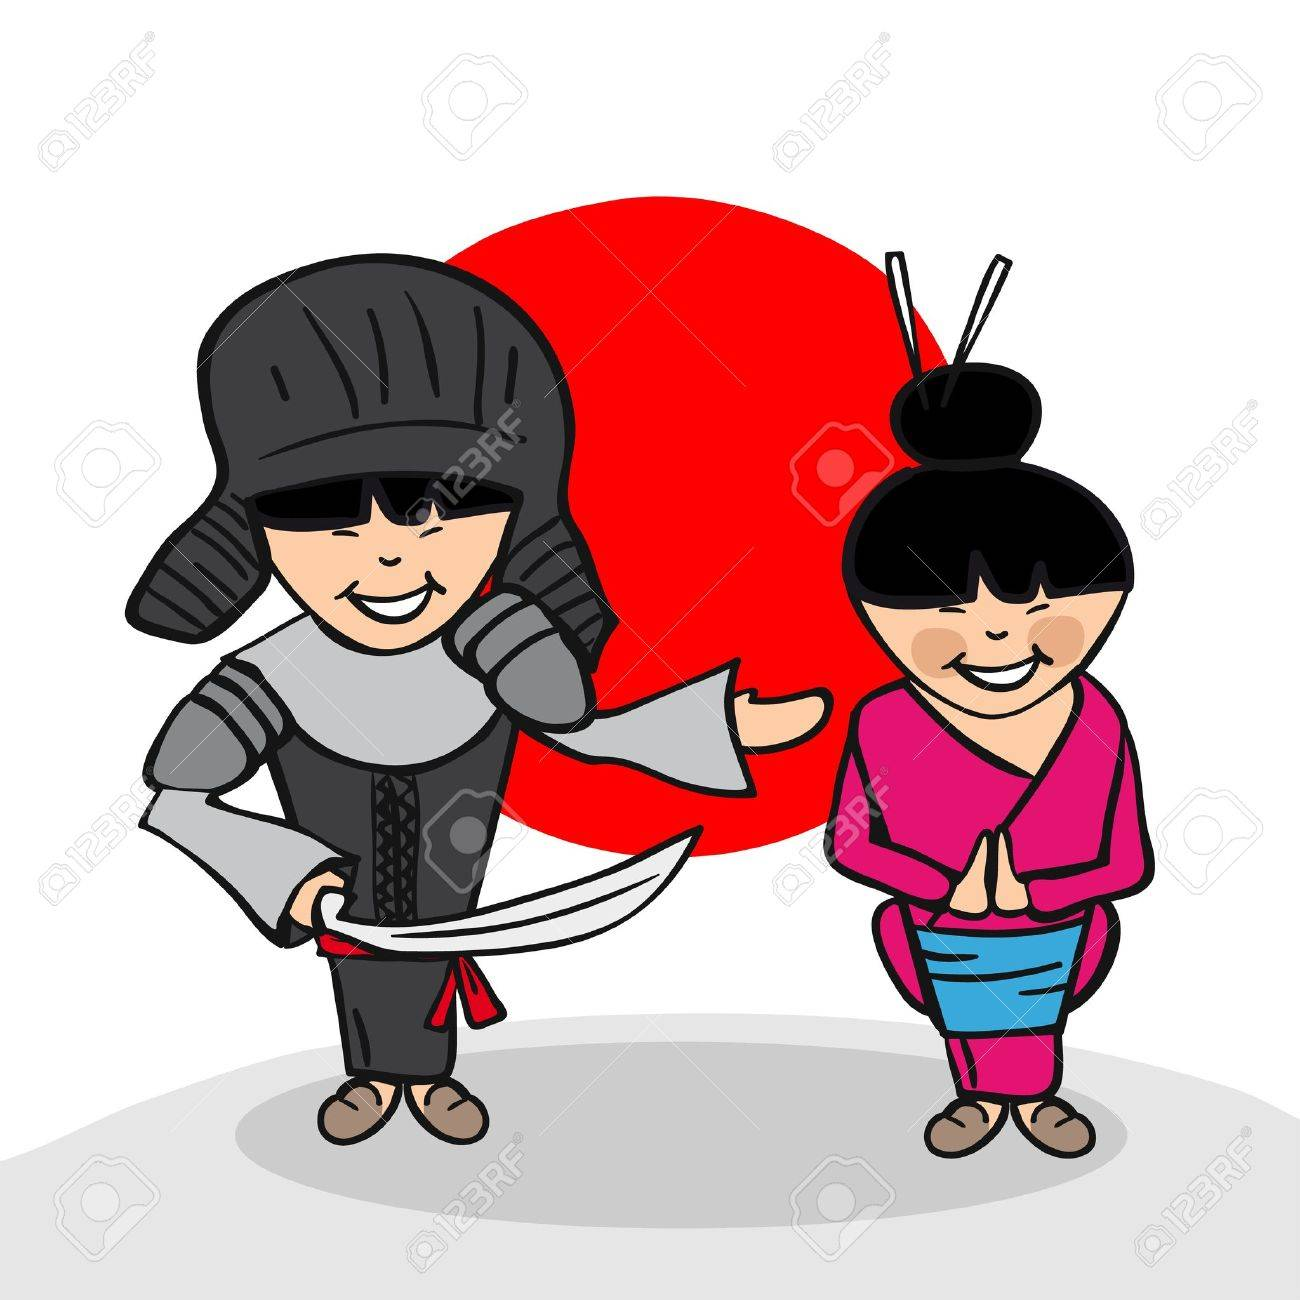 Japanese man and woman cartoon couple with national flag background. Vector illustration layered for easy editing. Stock Vector - 20602864